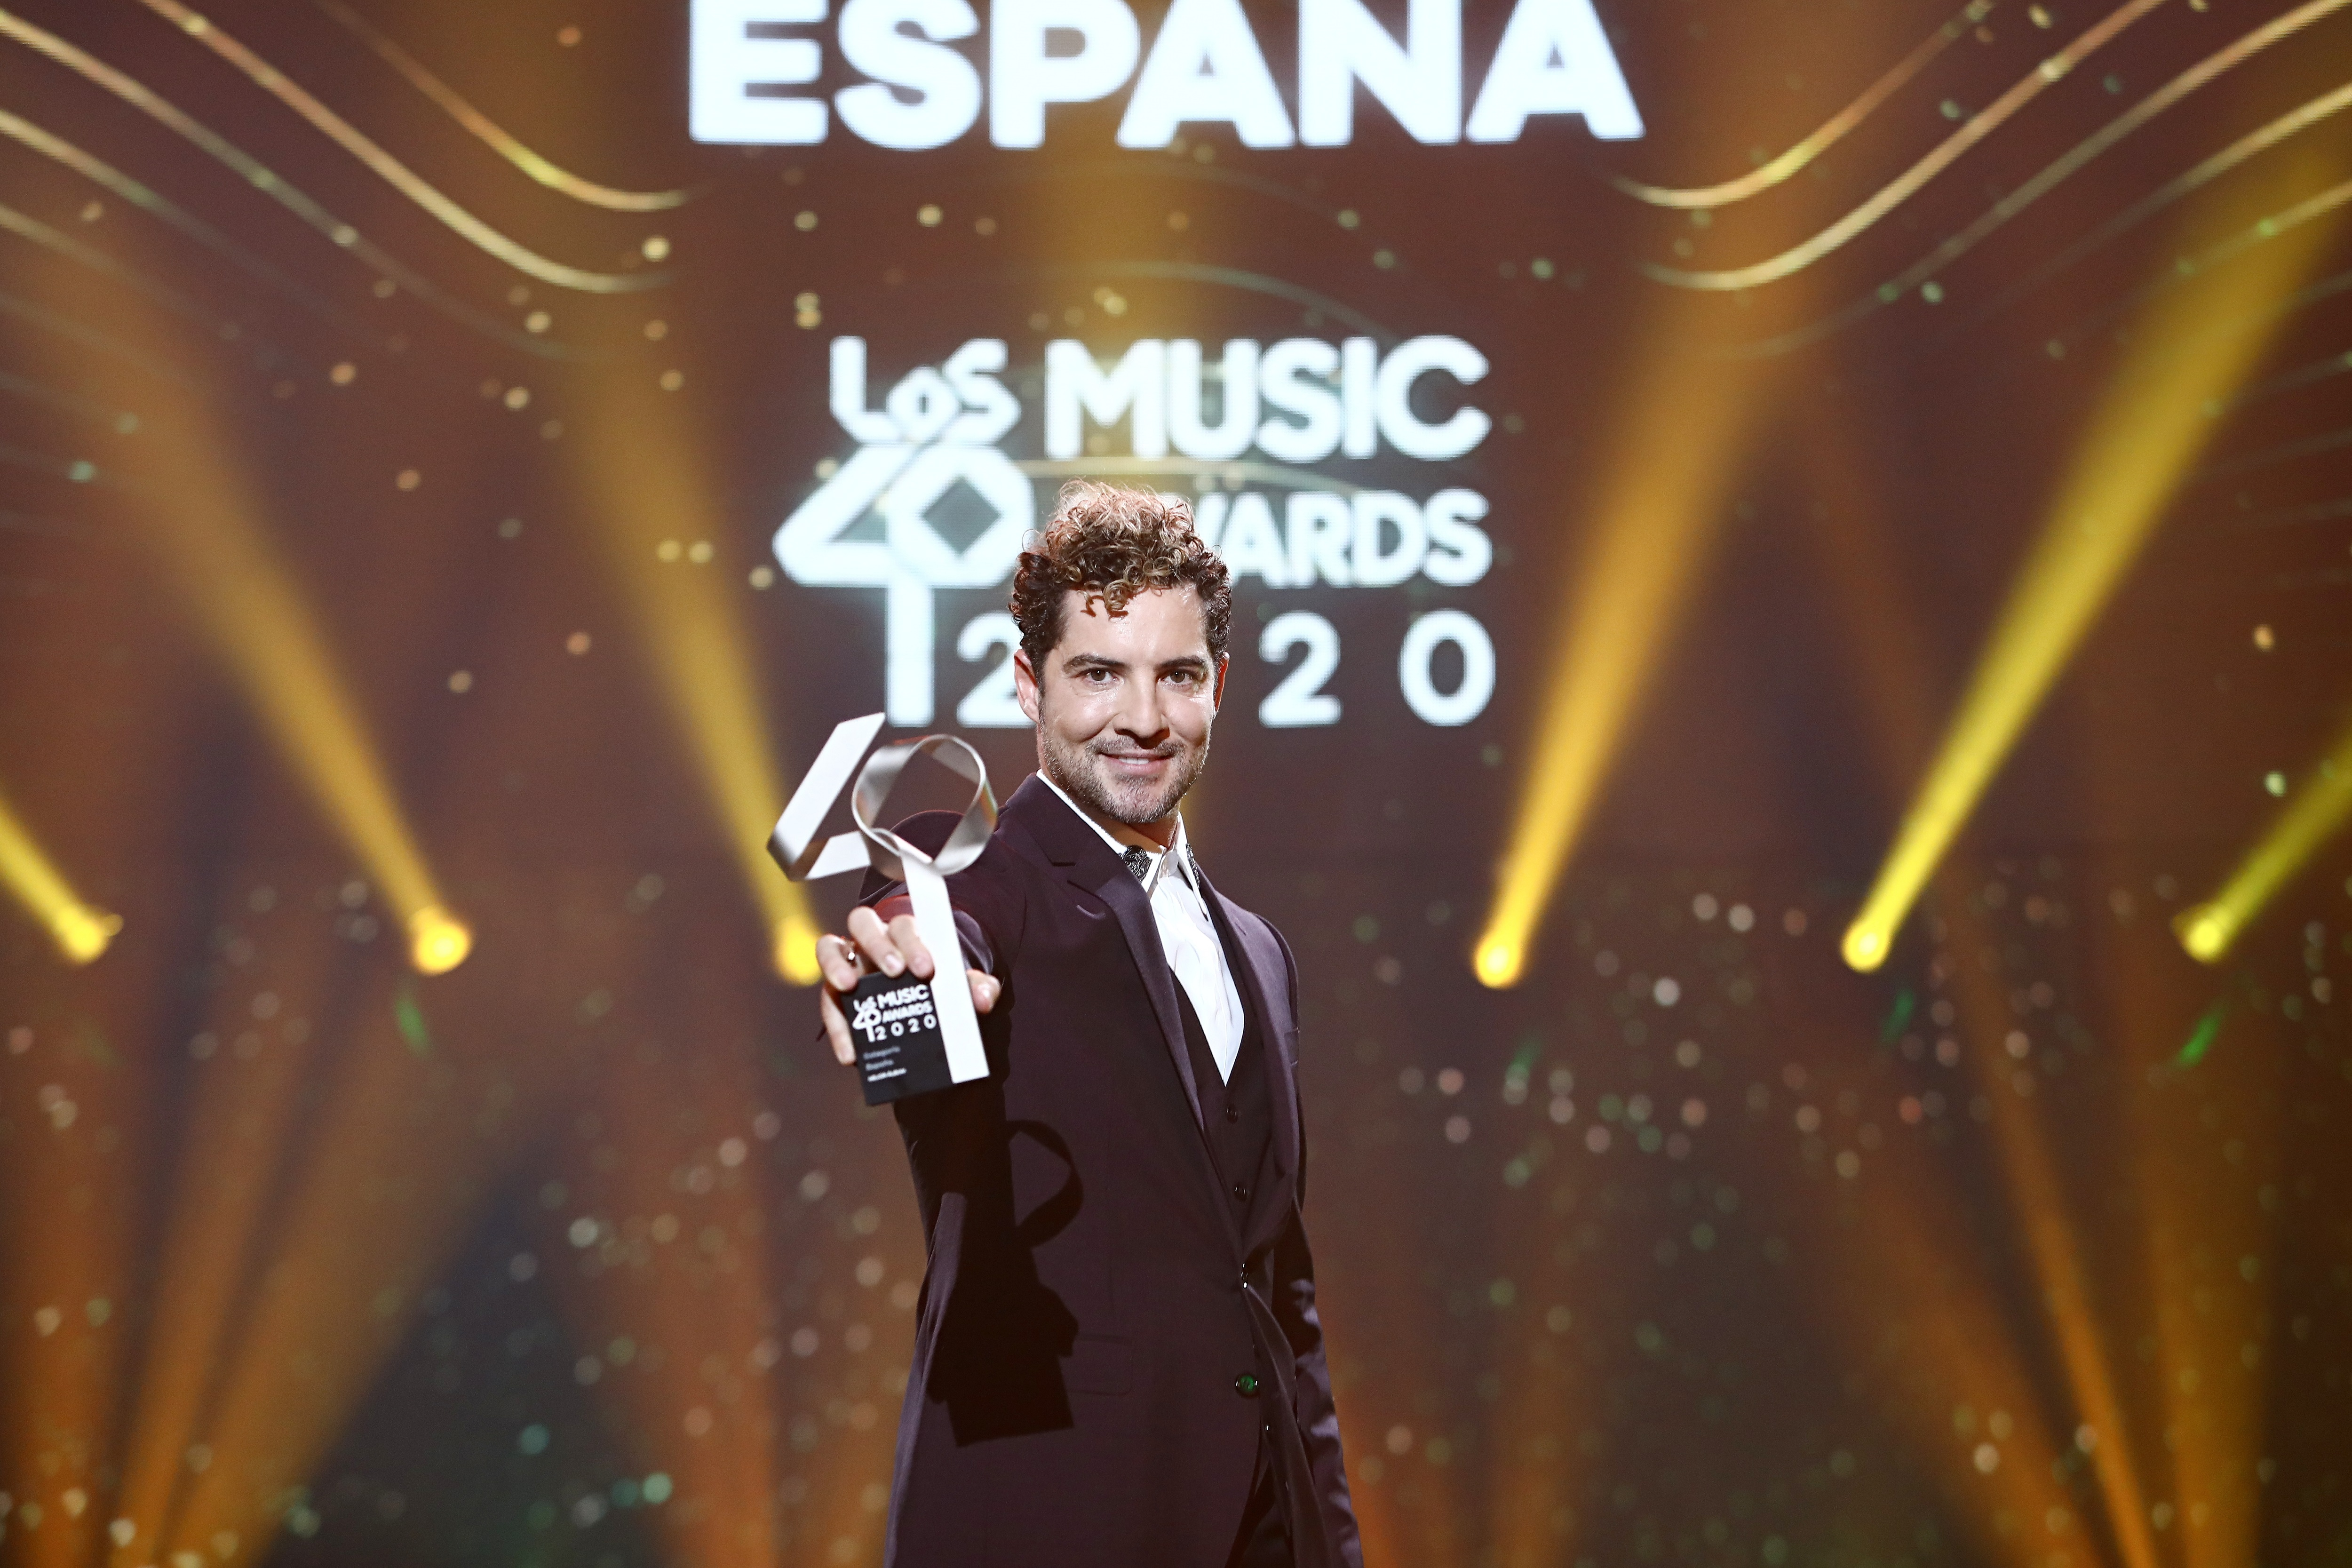 David Bisbal LOS40 Music Awards 2020